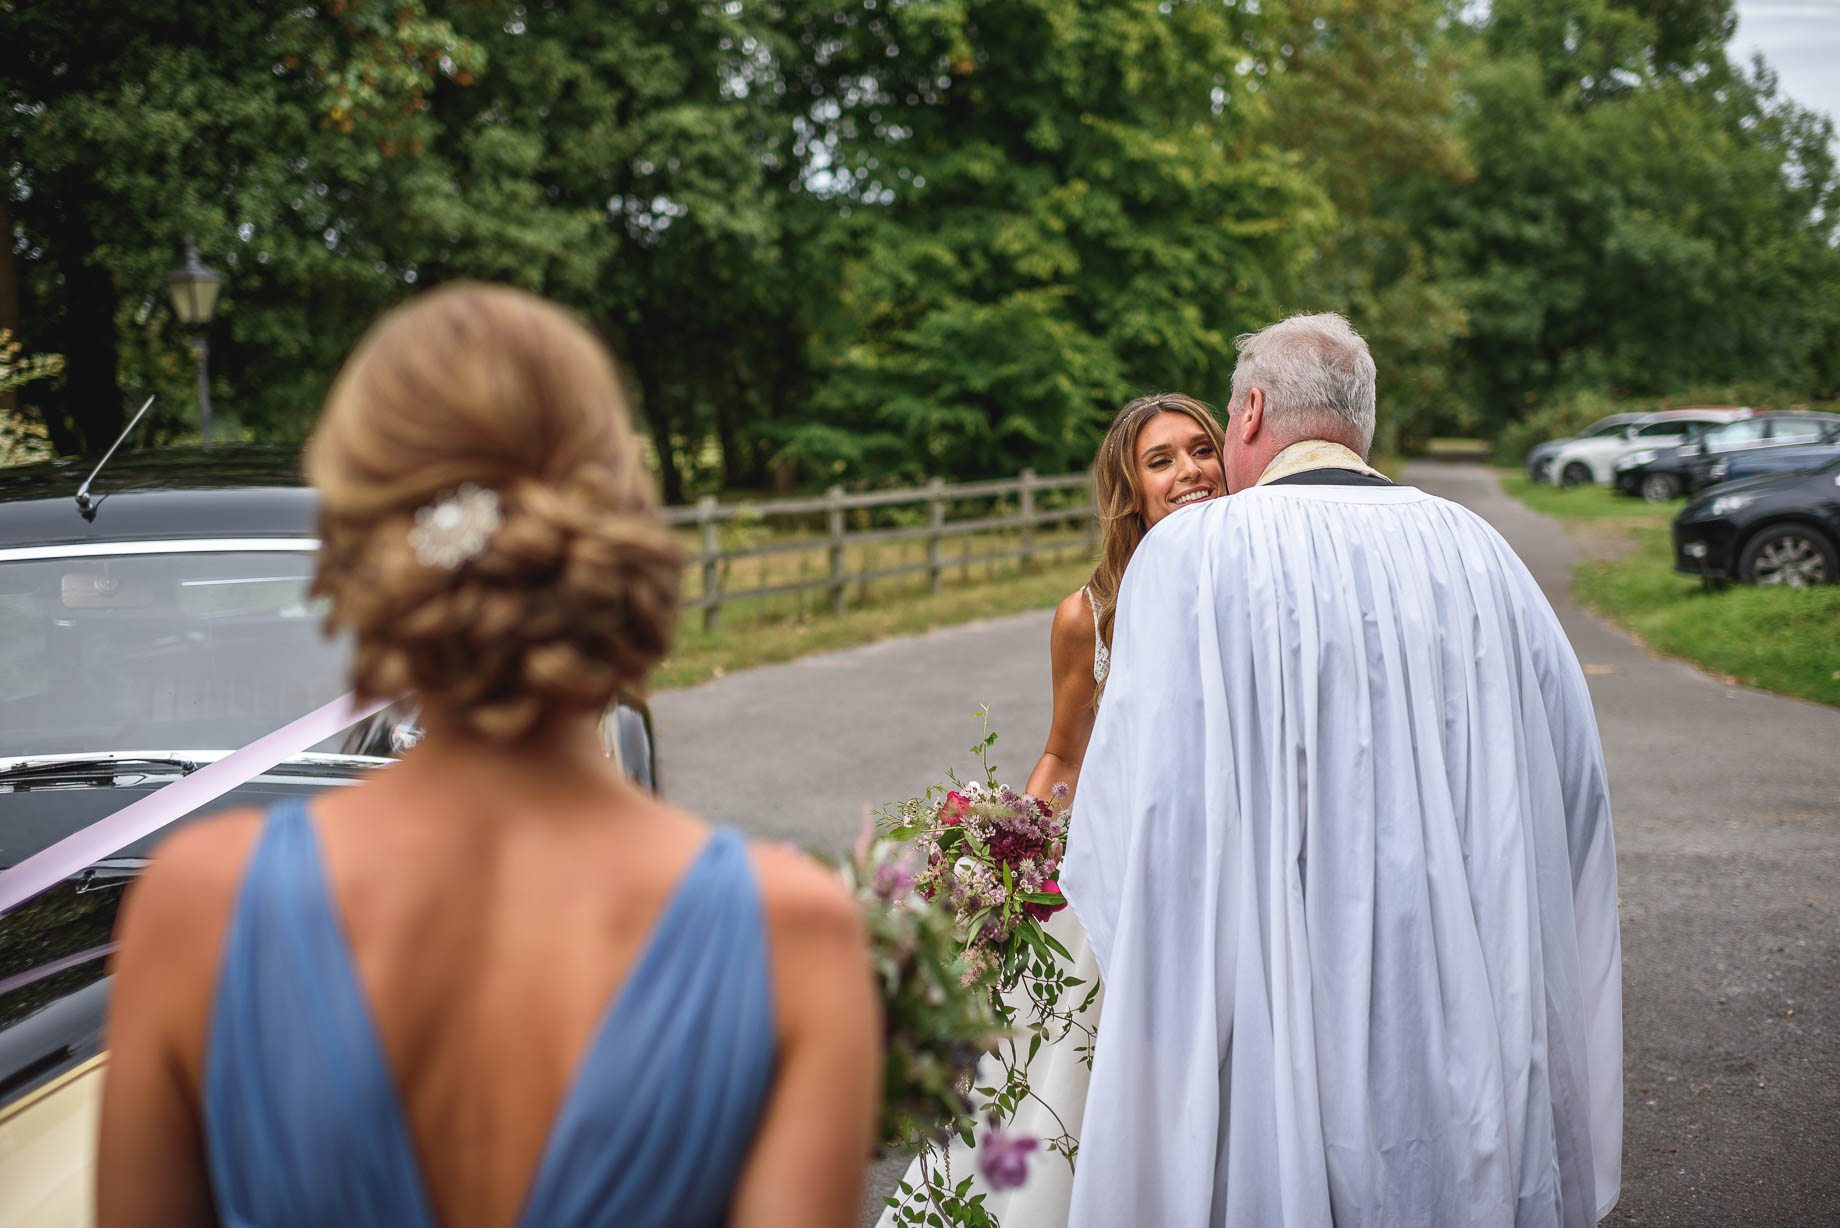 surrey-wedding-photography-guy-collier-photography-claire-and-tom-66-of-227